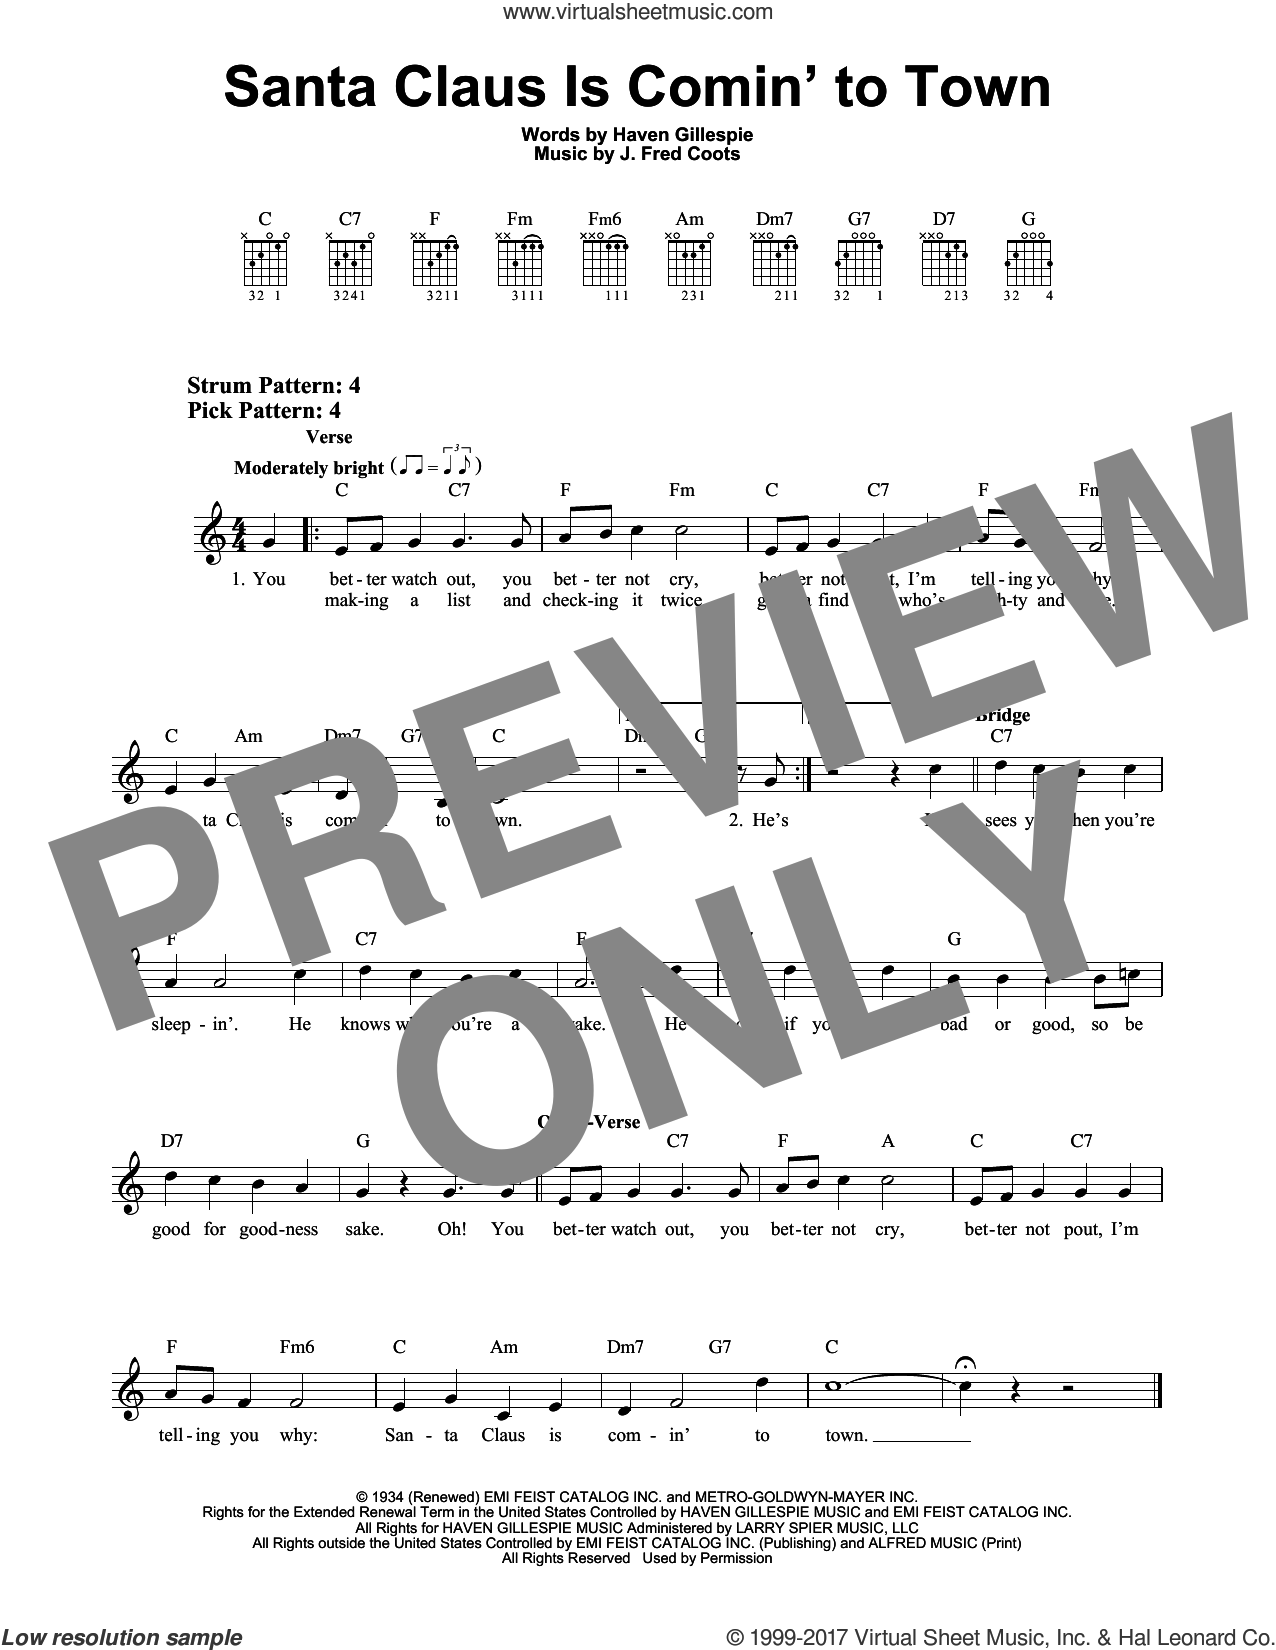 Santa Claus Is Comin' To Town sheet music for guitar solo (chords) by J. Fred Coots and Haven Gillespie. Score Image Preview.